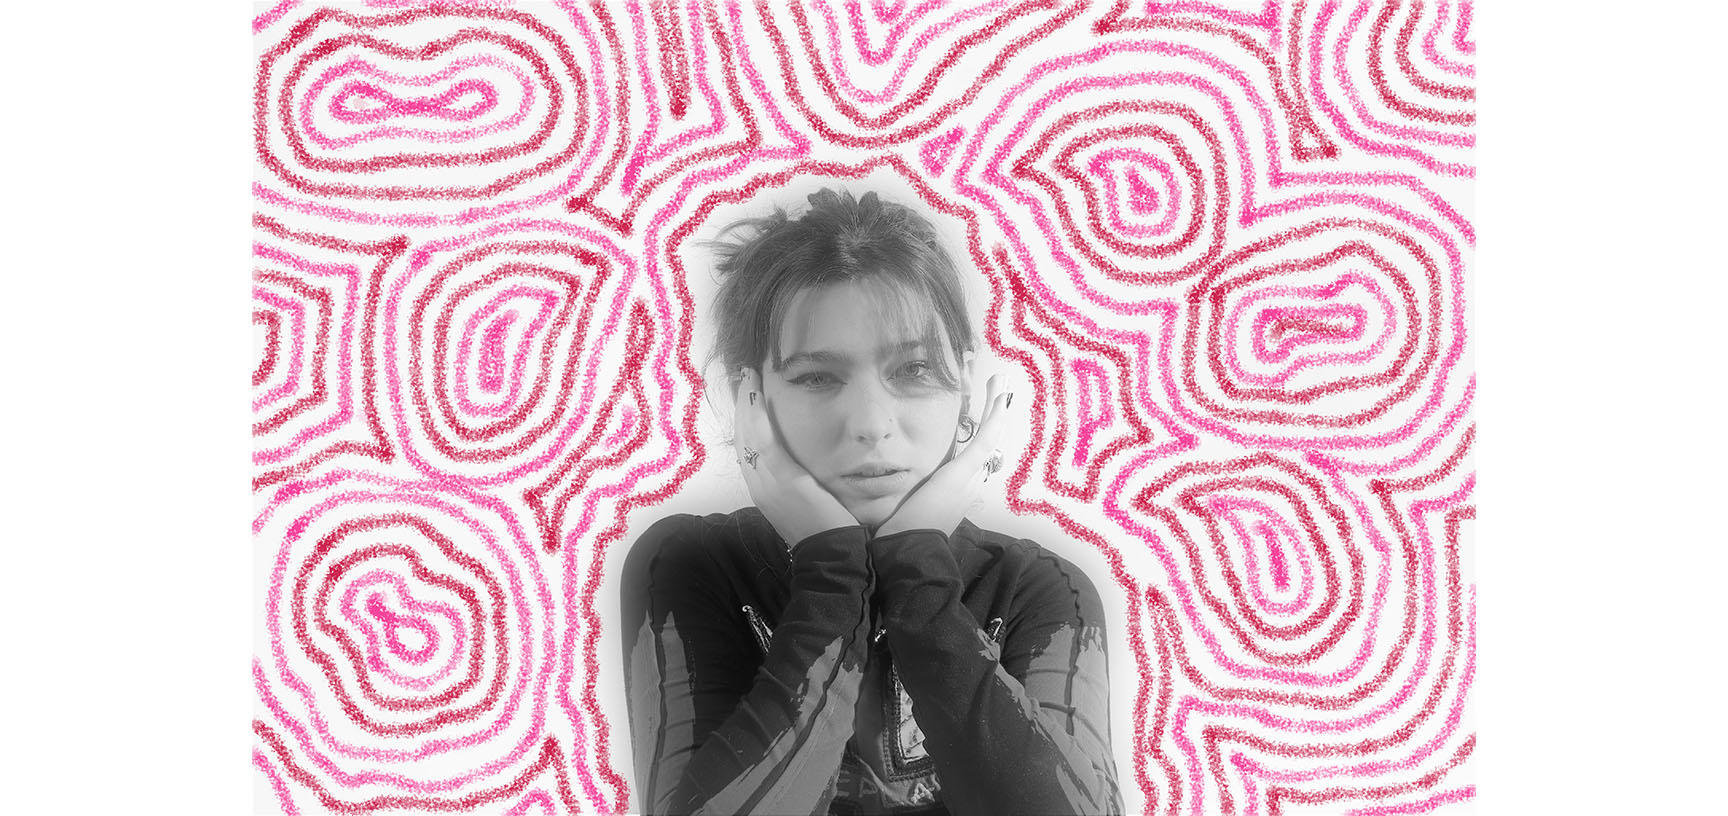 Black and white photograph of a woman propping her chin on her hands. This is overlaid on a pink patterned background